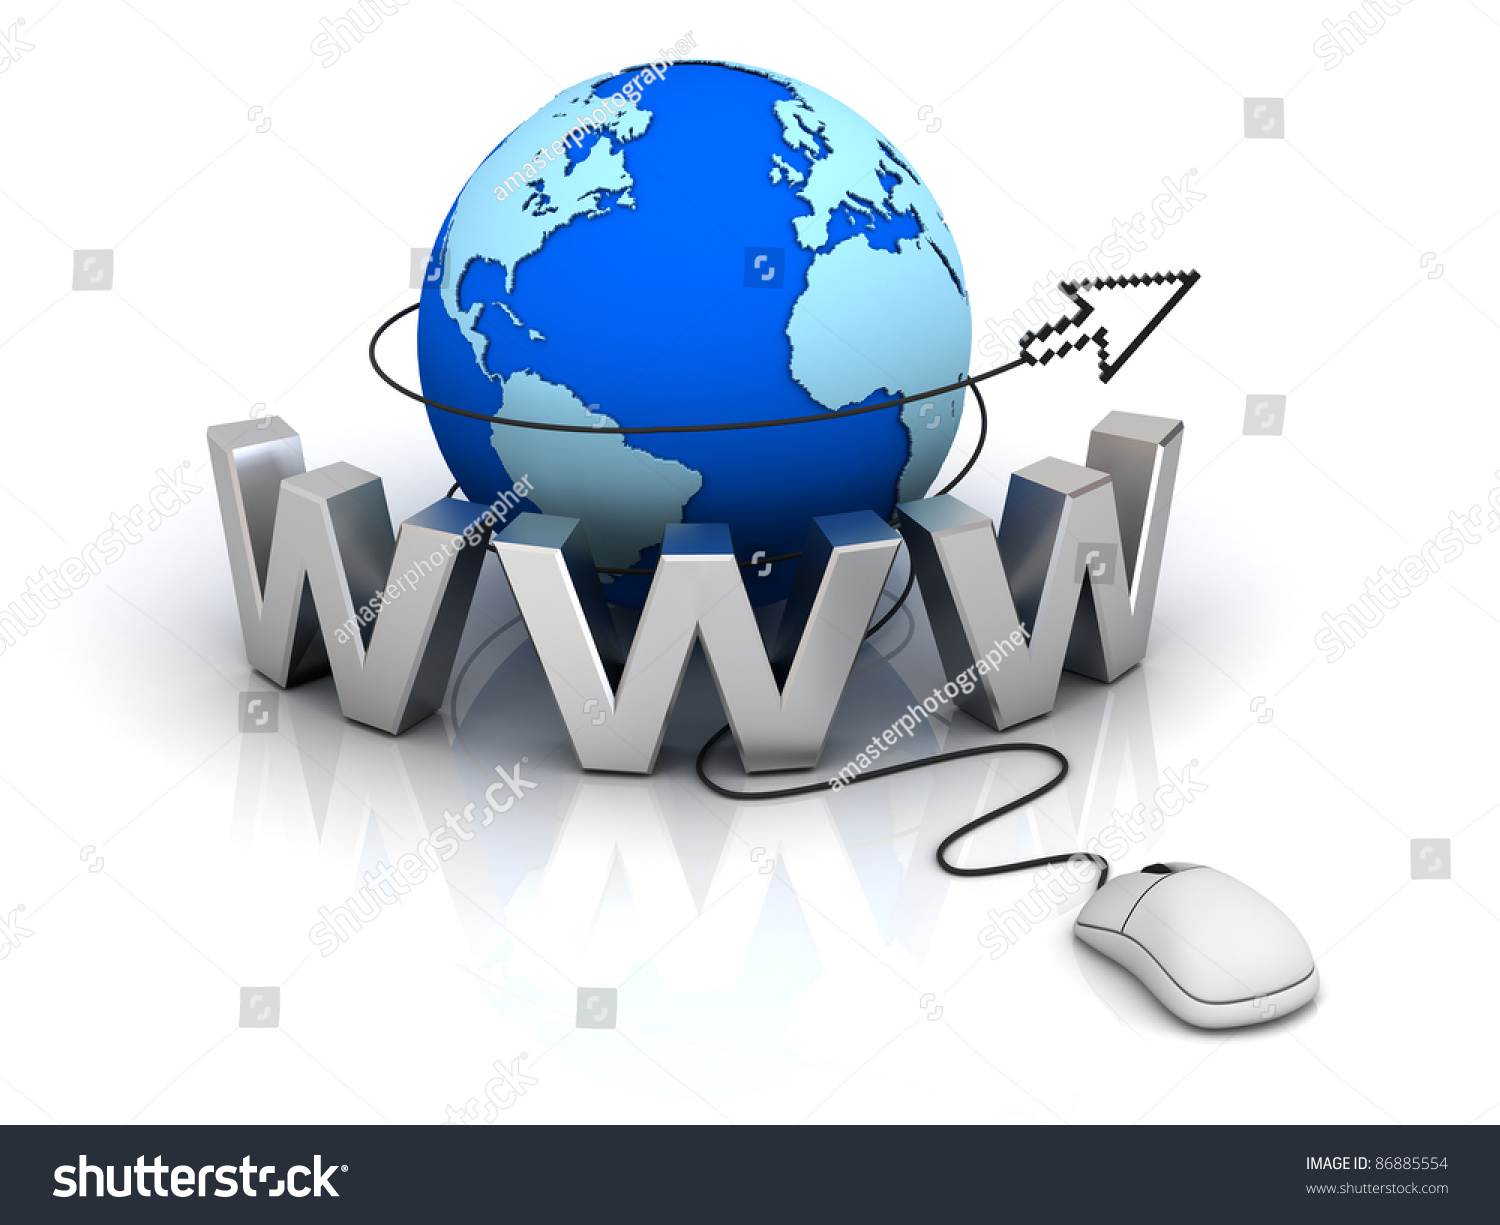 an analysis of privacy in the world wide web and the internet Start studying promo test 3 (chpts 8-11 one advantage associated with using the world wide web is the concept most internet users fear invasion of privacy.